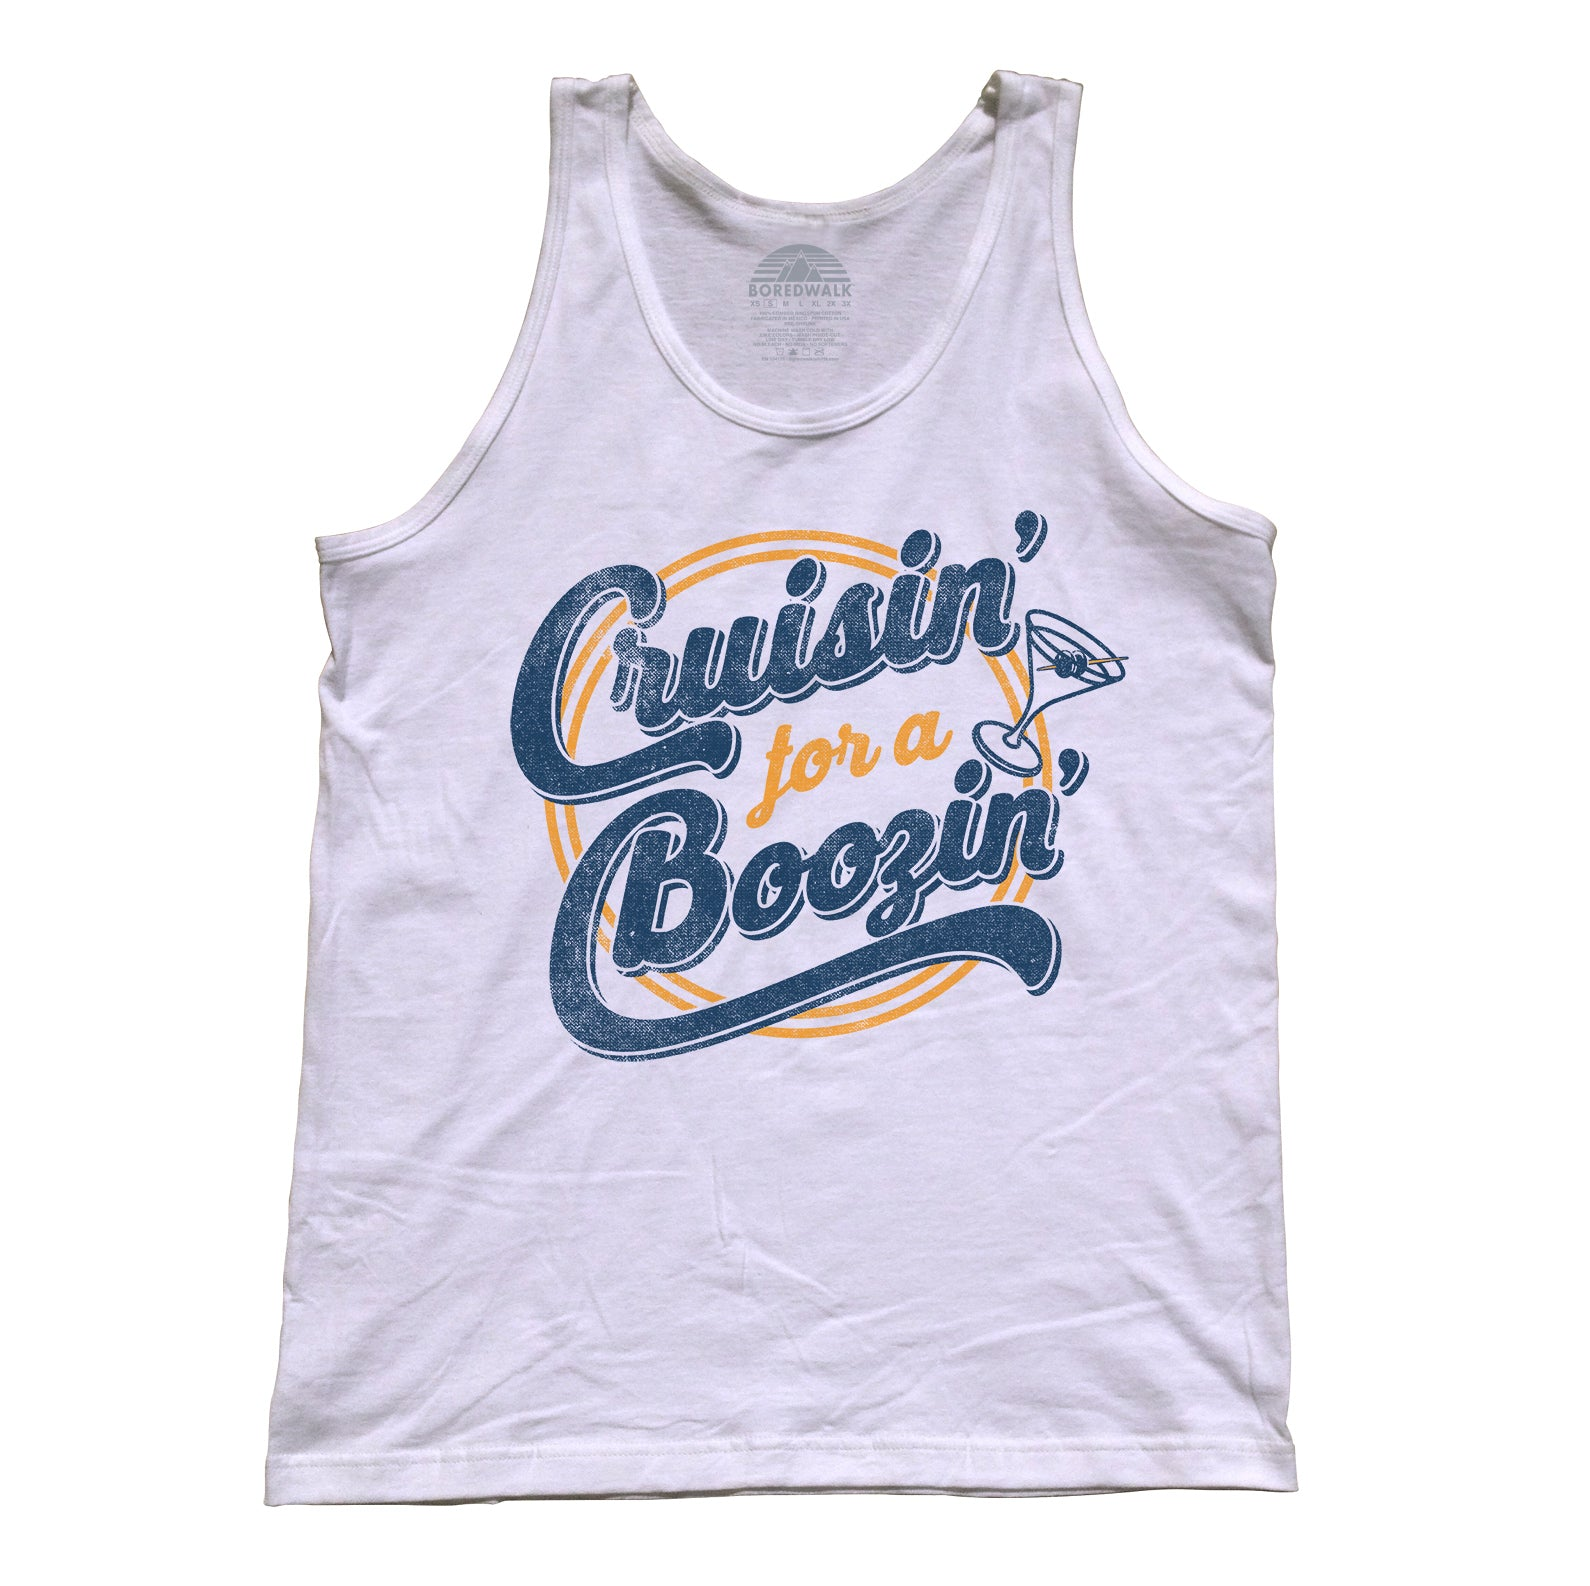 Unisex Cruisin for a Boozin Tank Top - Funny Drinking Shirt